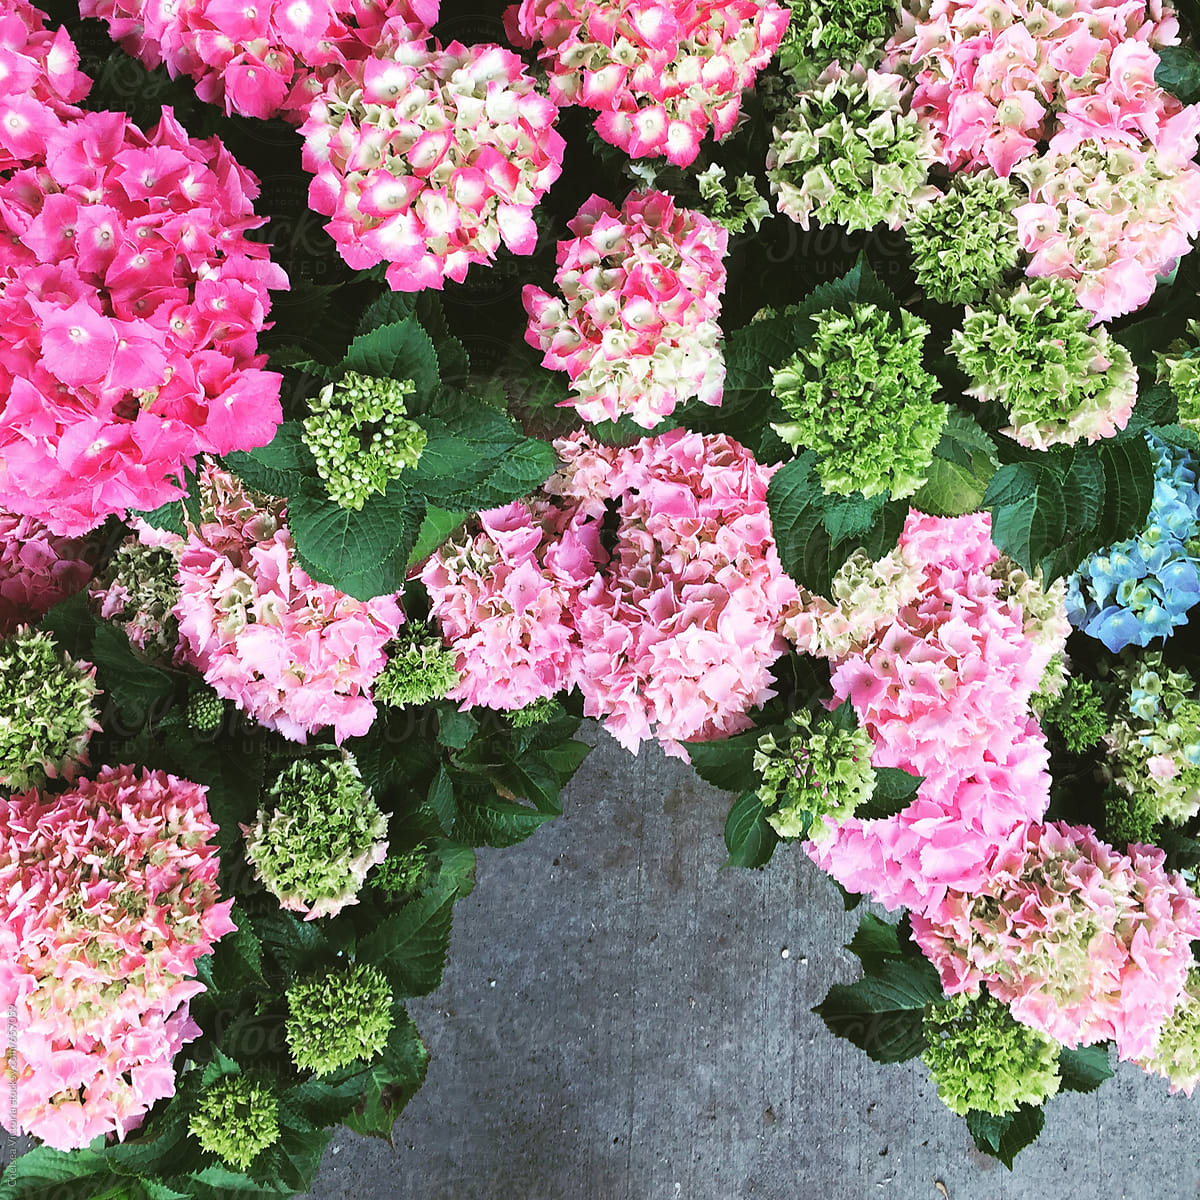 Pink And Green Hydrangeas At A Flower Market Stocksy United